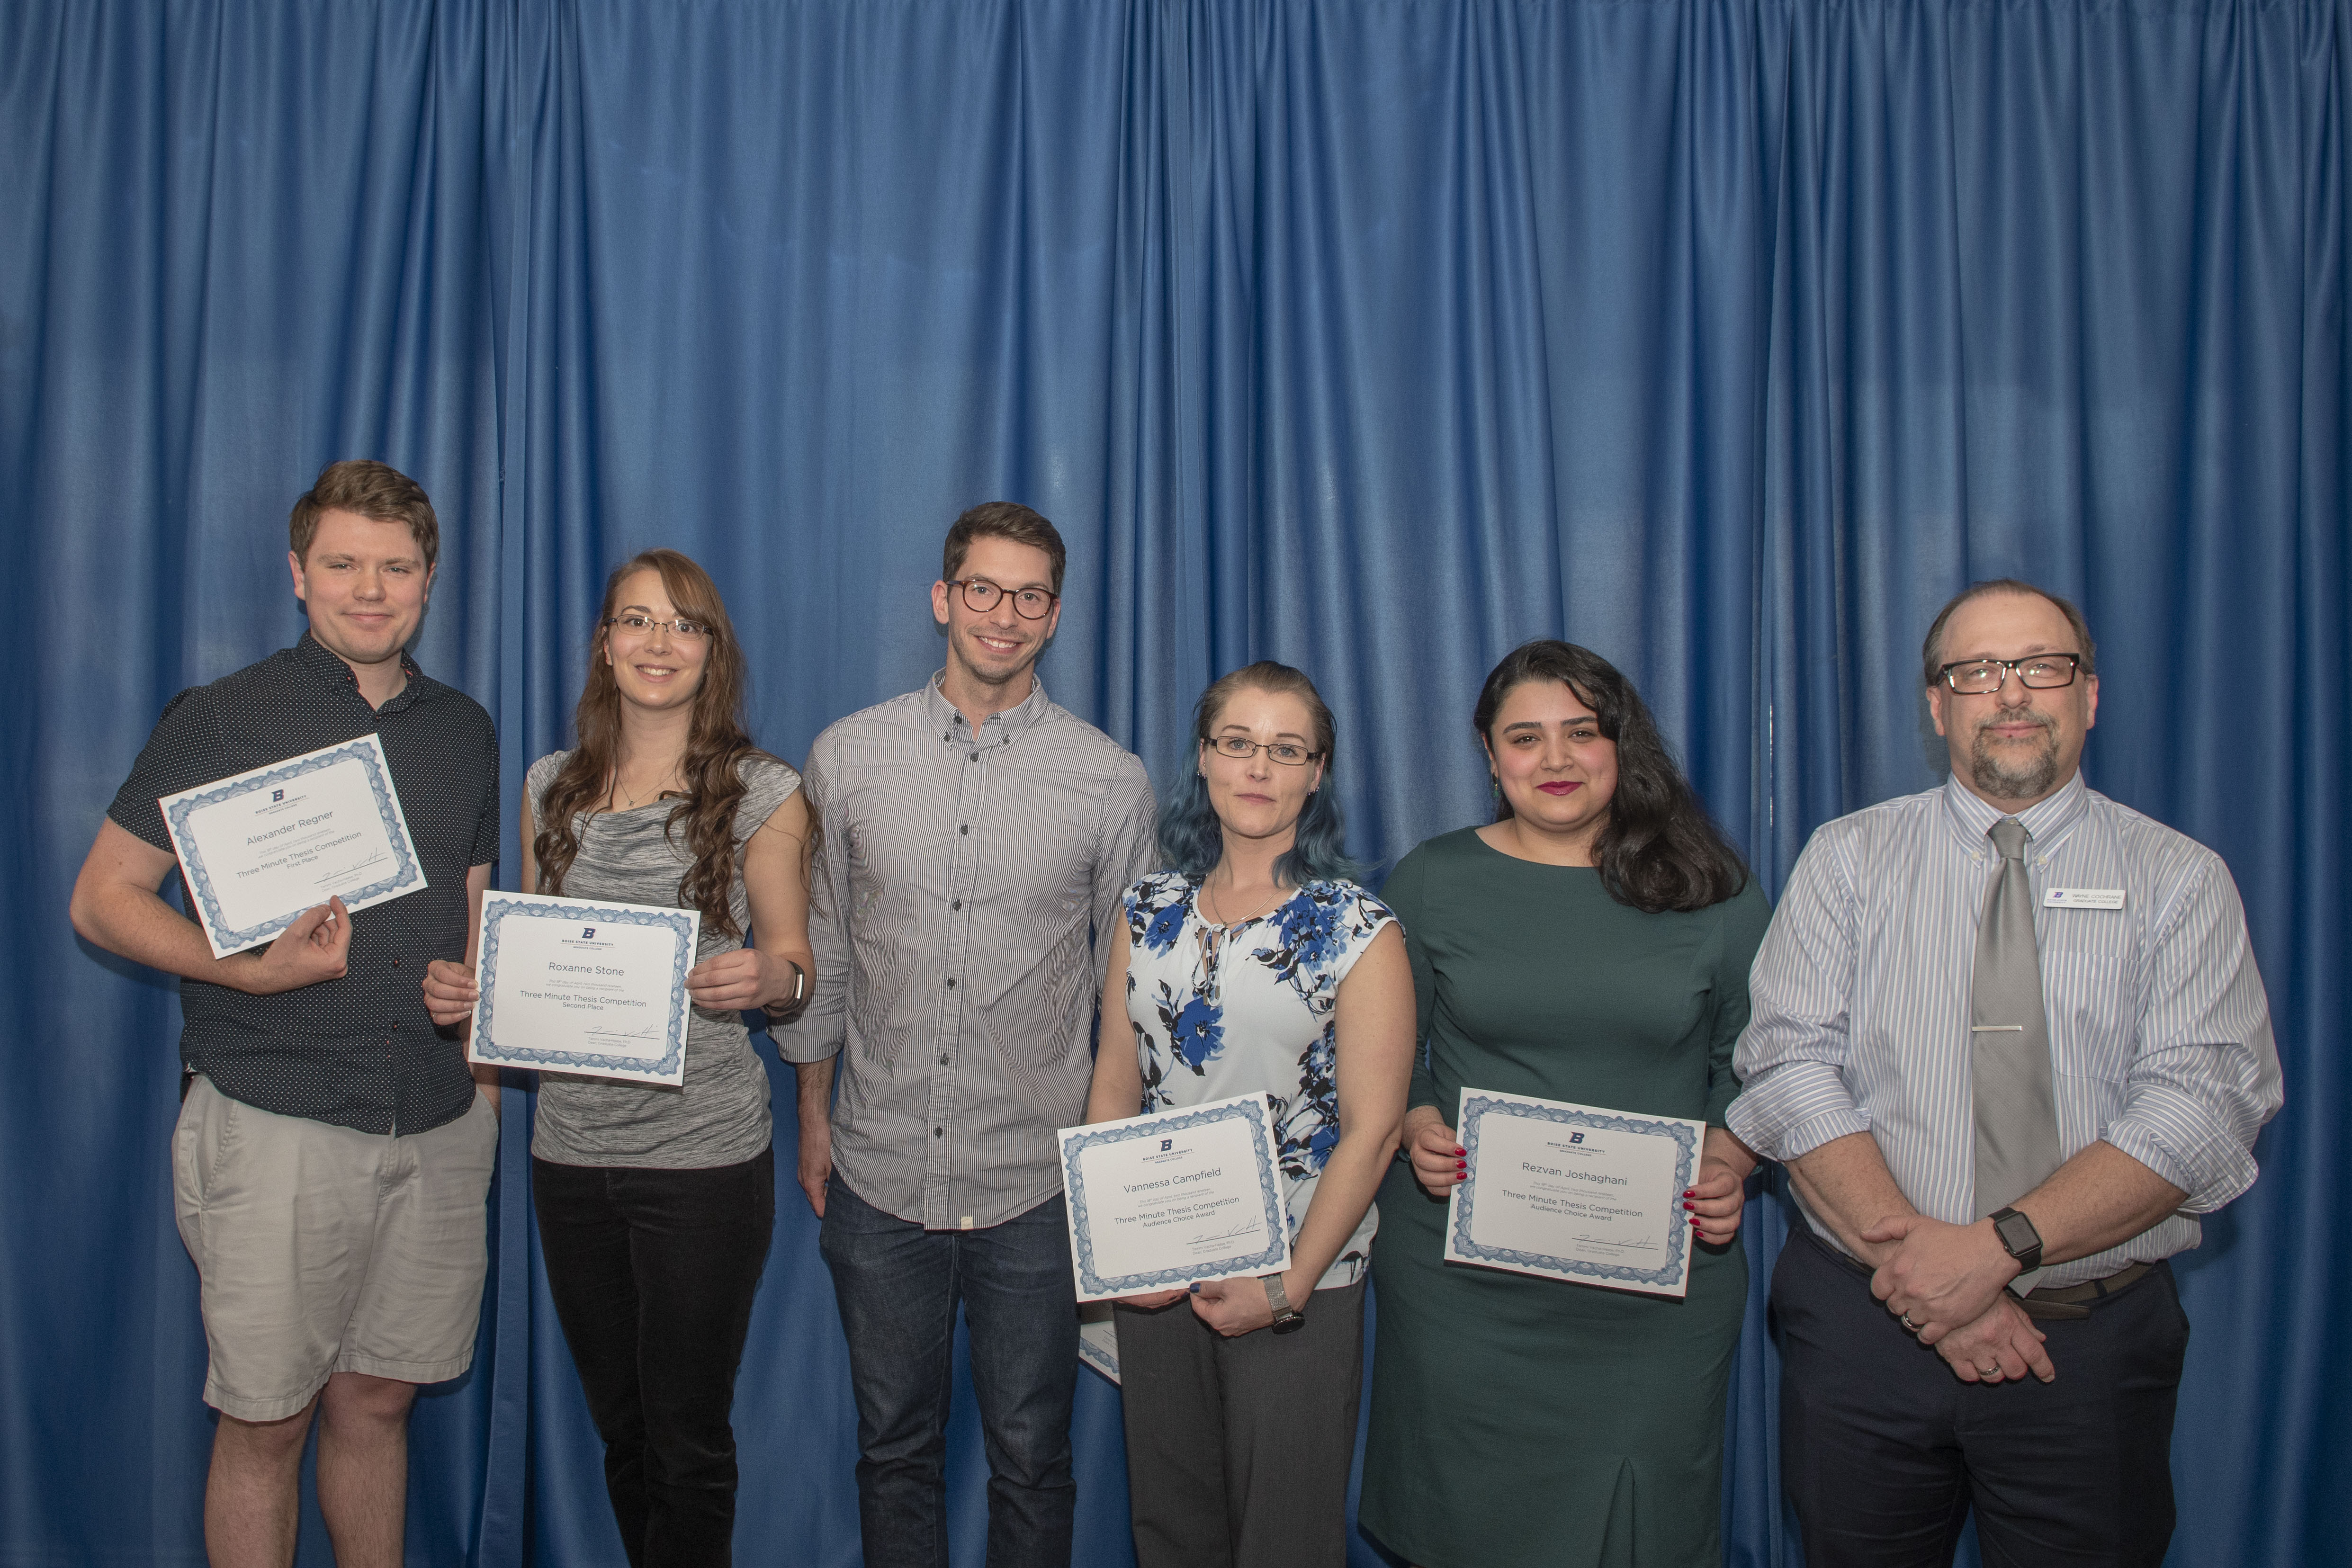 Three Minute Thesis Award winners pictured